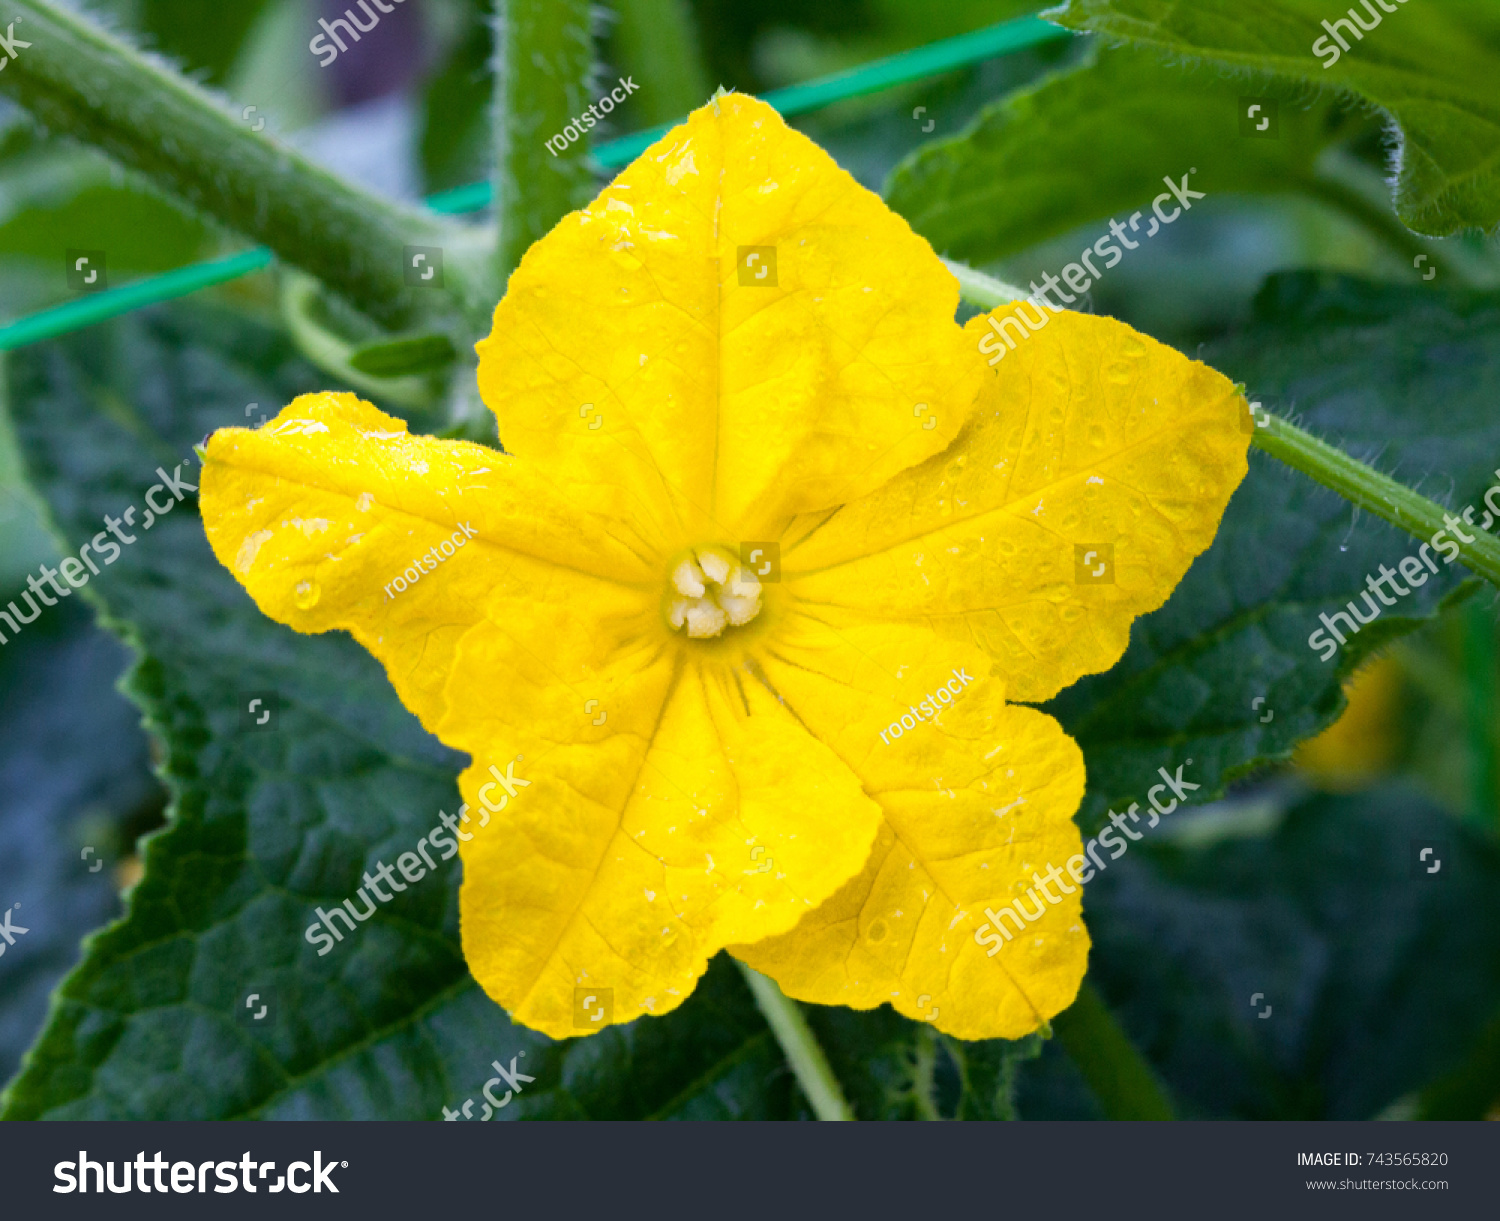 Cucumber Yellow Flower On The Cucumber Plant In The Vegetable Garden